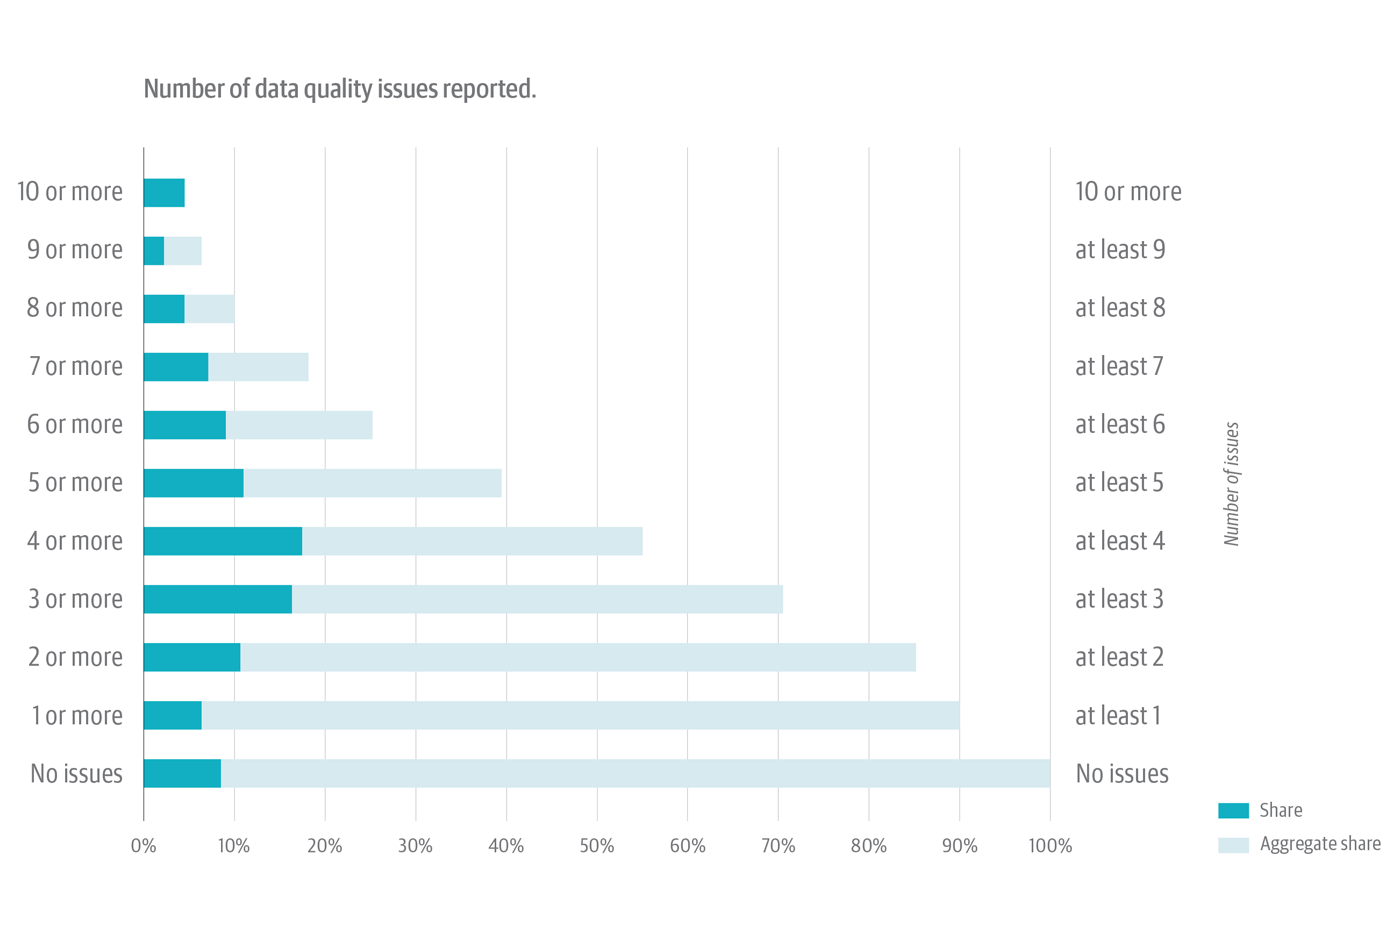 Number of data quality issues reported